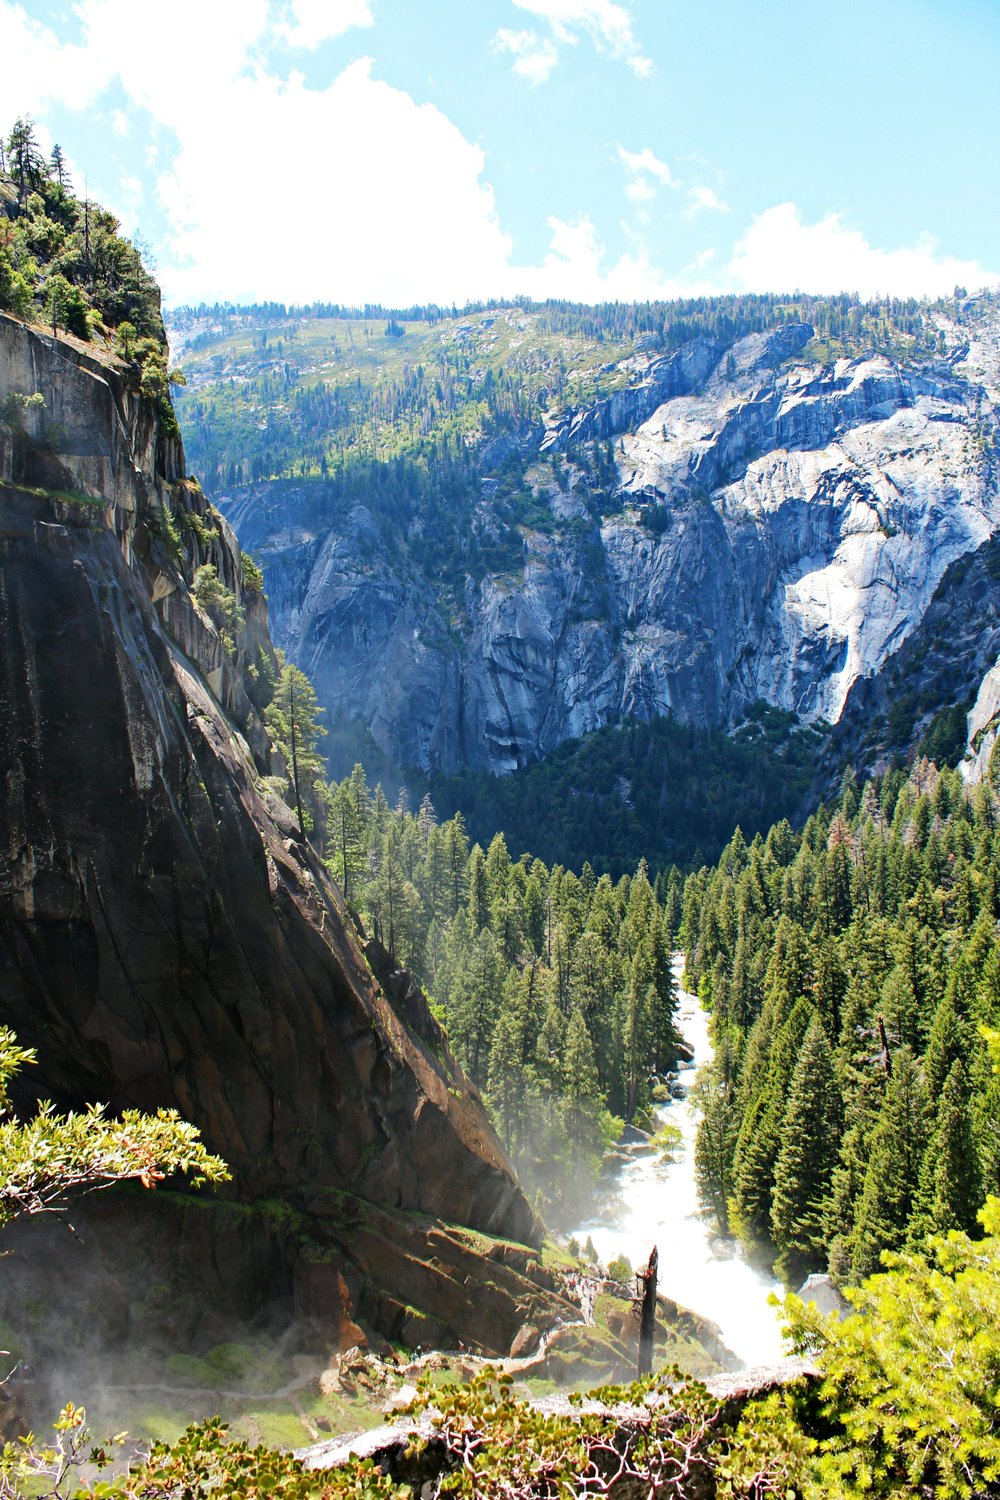 view from John Muir trail after Vernal Fall Yosemite